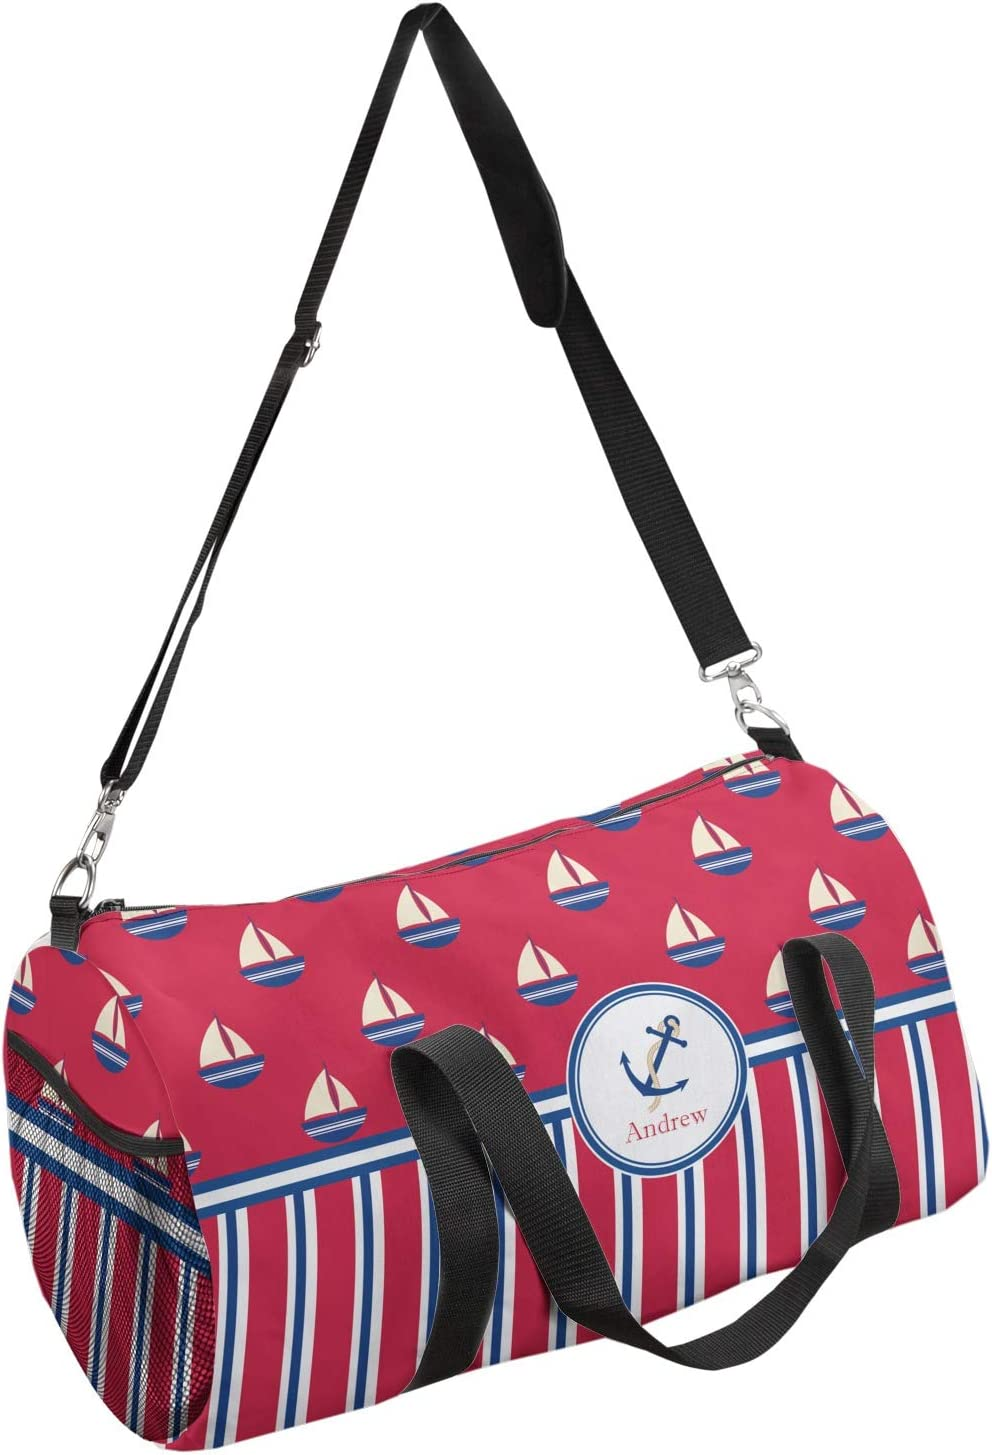 YouCustomizeIt Sail Boats /& Stripes Duffel Bag Personalized